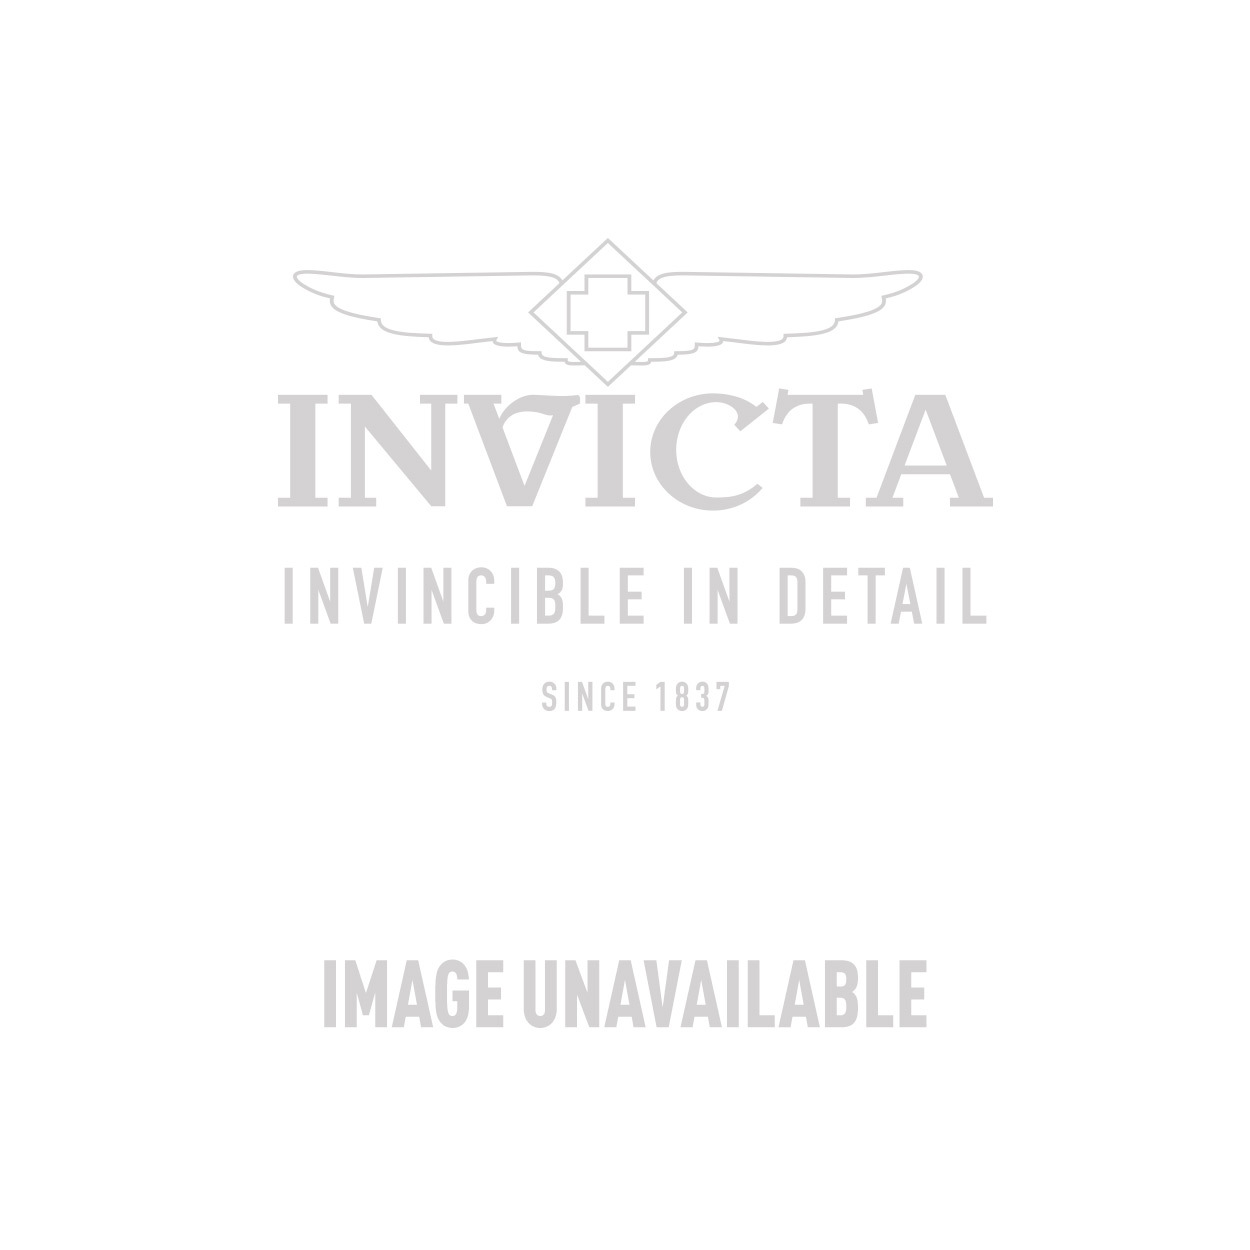 Invicta Pro Diver Quartz Watch - Stainless Steel case Stainless Steel band - Model 14123